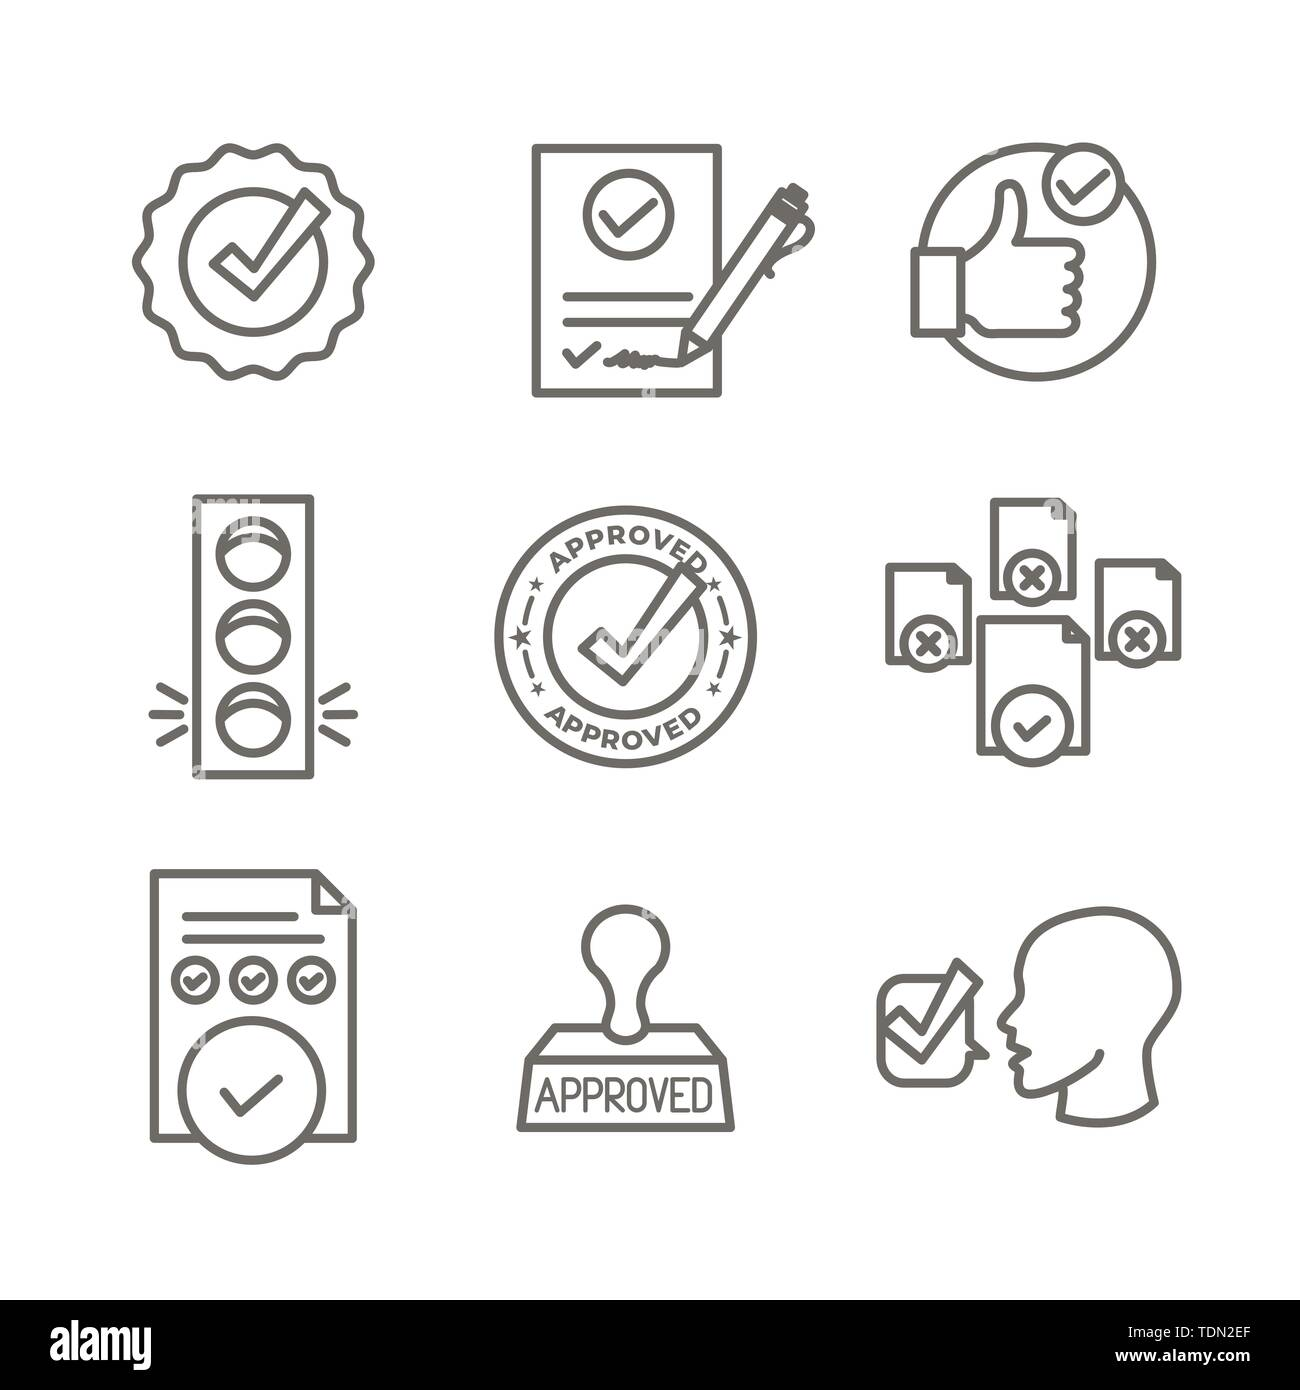 Approval and Signature Icon Set w Stamp and version icons - Stock Image